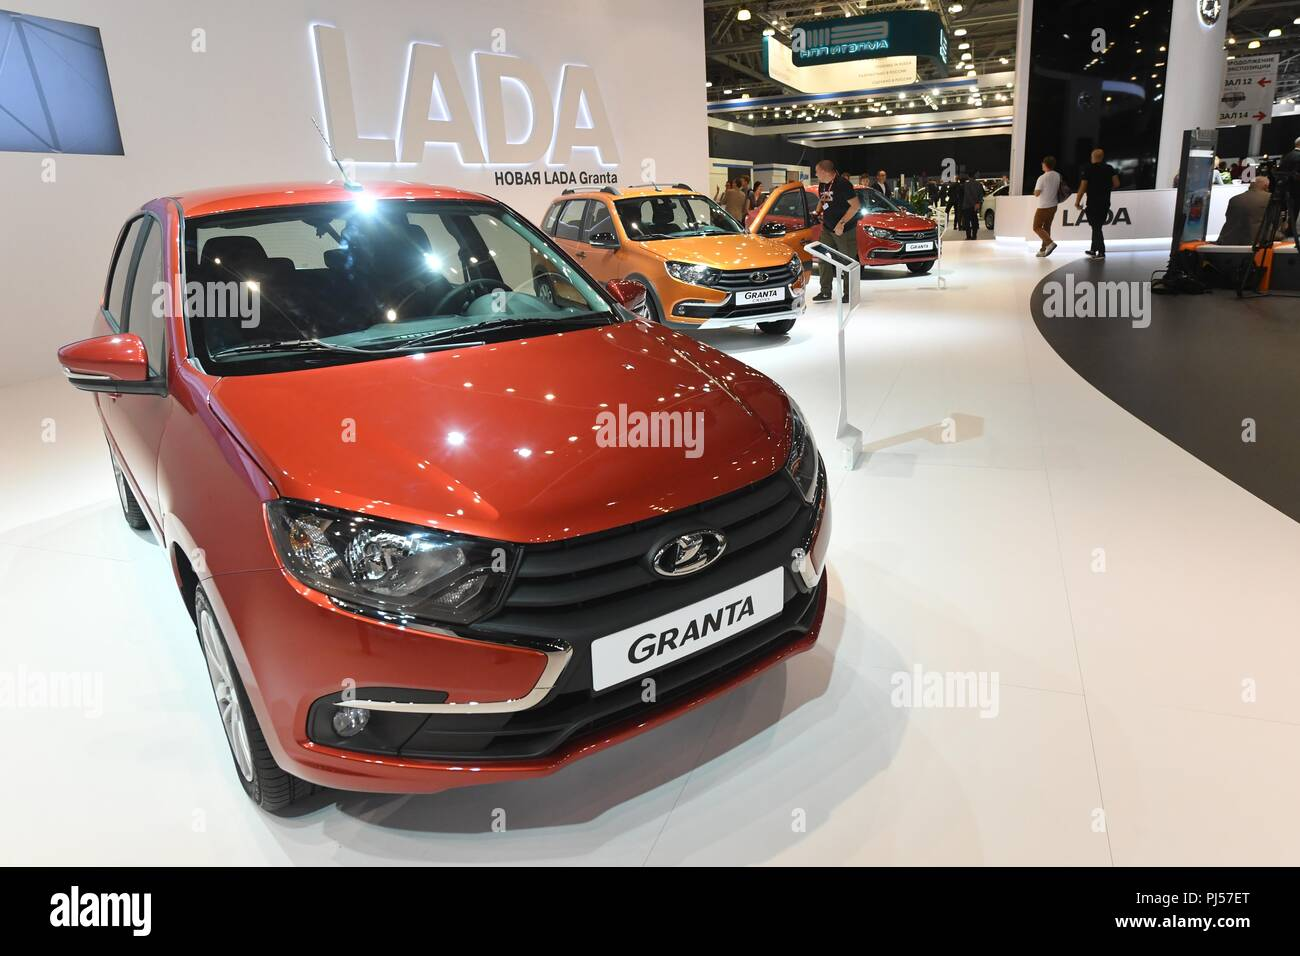 Lada Granta (VAZ-2190) - the model of the national car